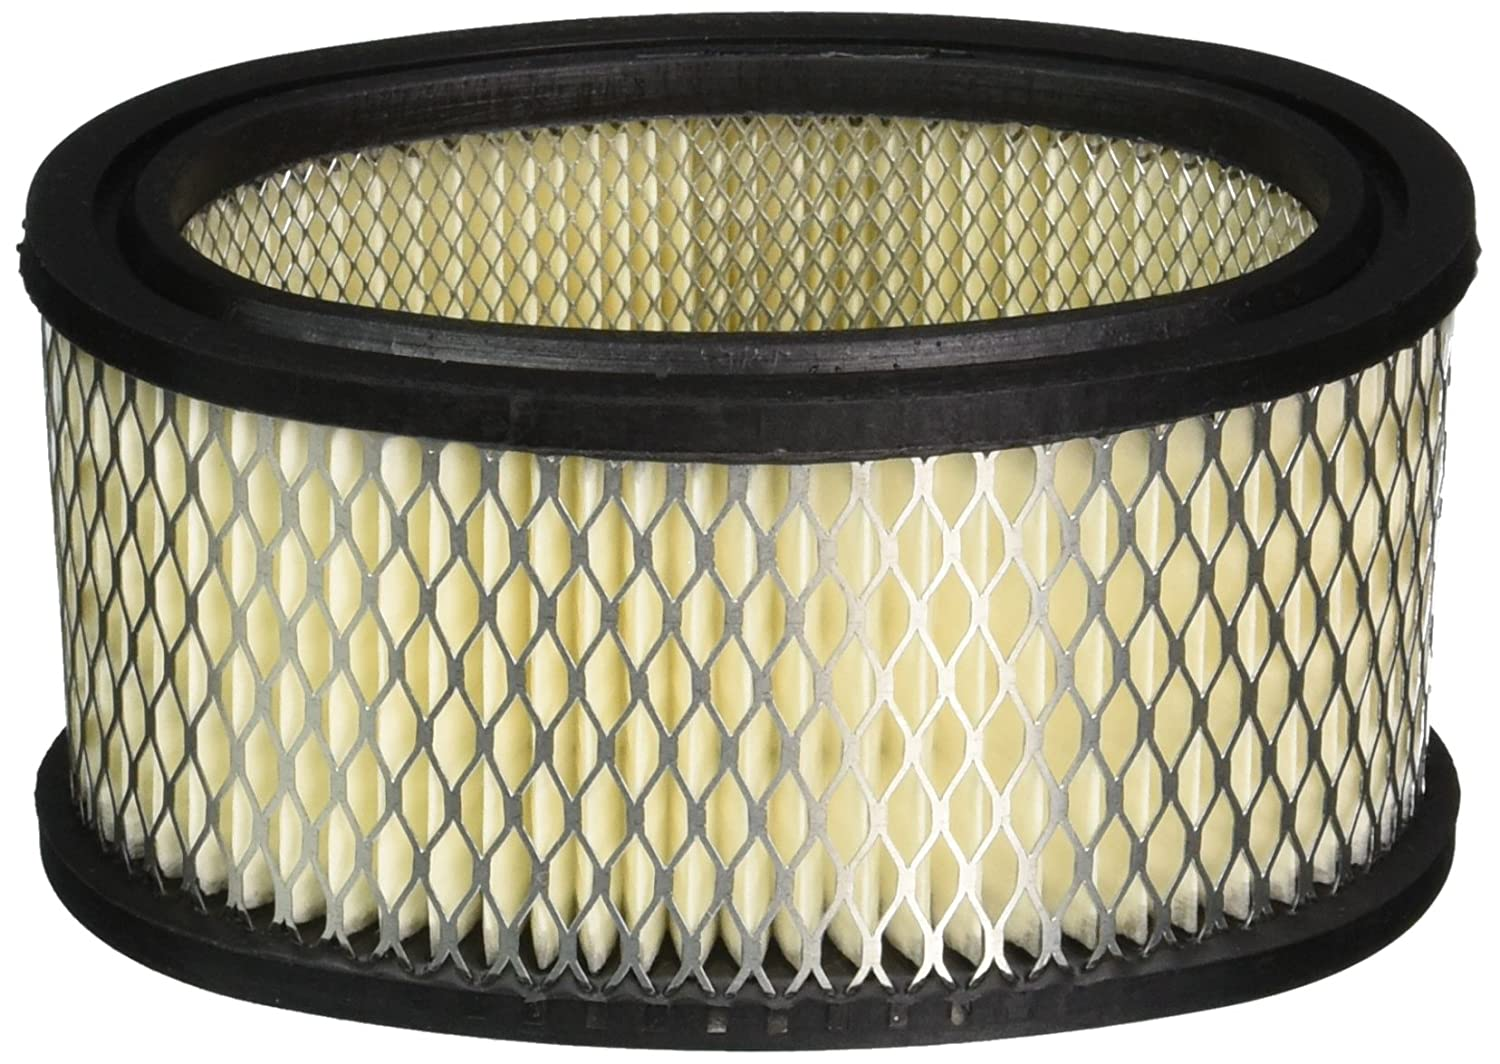 Stens 100-198 Briggs and Stratton 393725 Air Filter